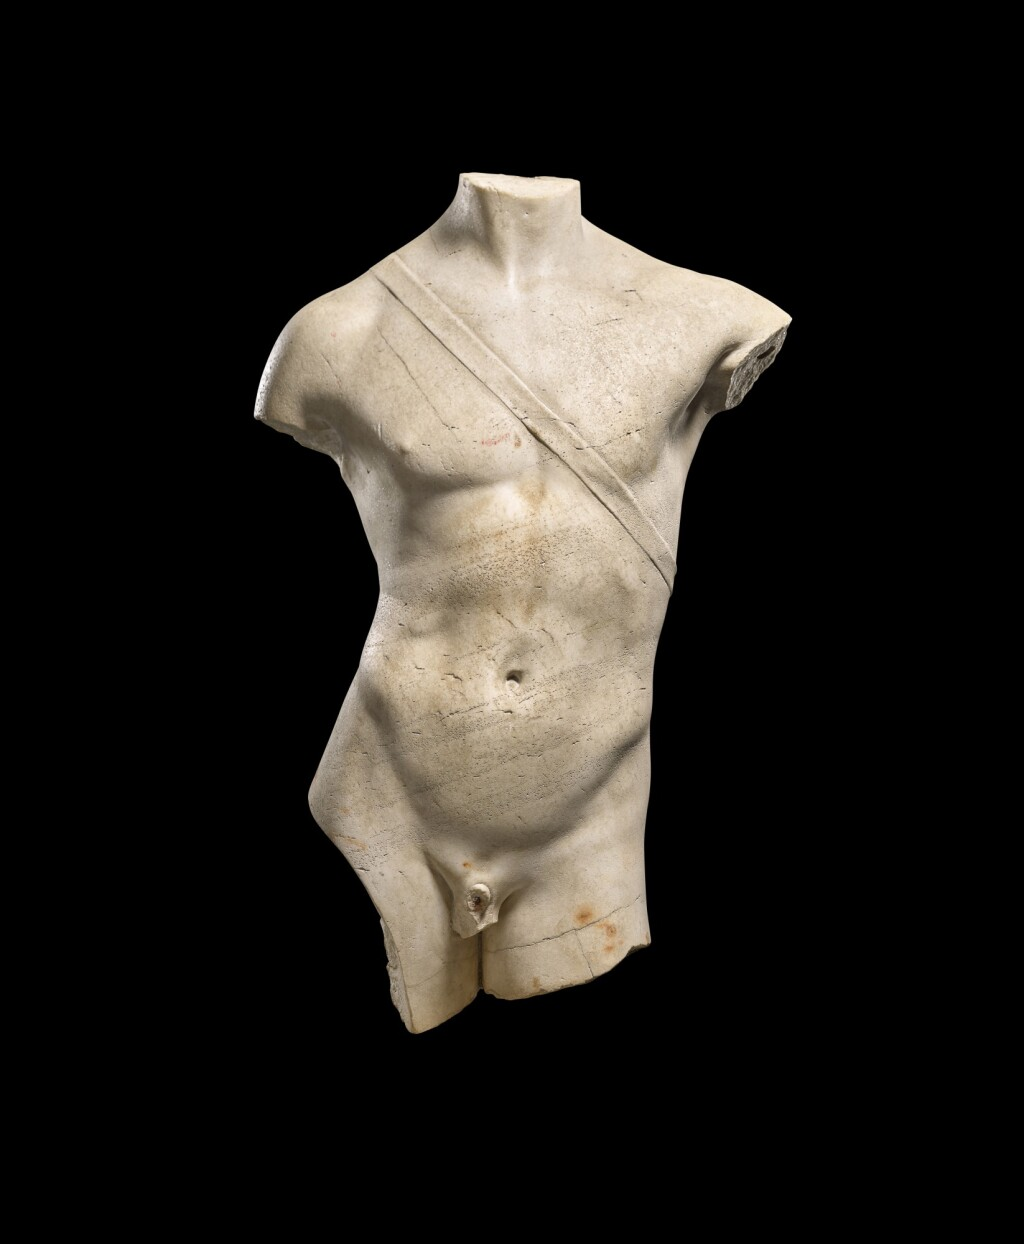 A ROMAN MARBLE TORSO OF APOLLO, CIRCA 2ND CENTURY A.D., REWORKED AND RESTORED IN THE LATE 16TH/17TH CENTURY A.D.